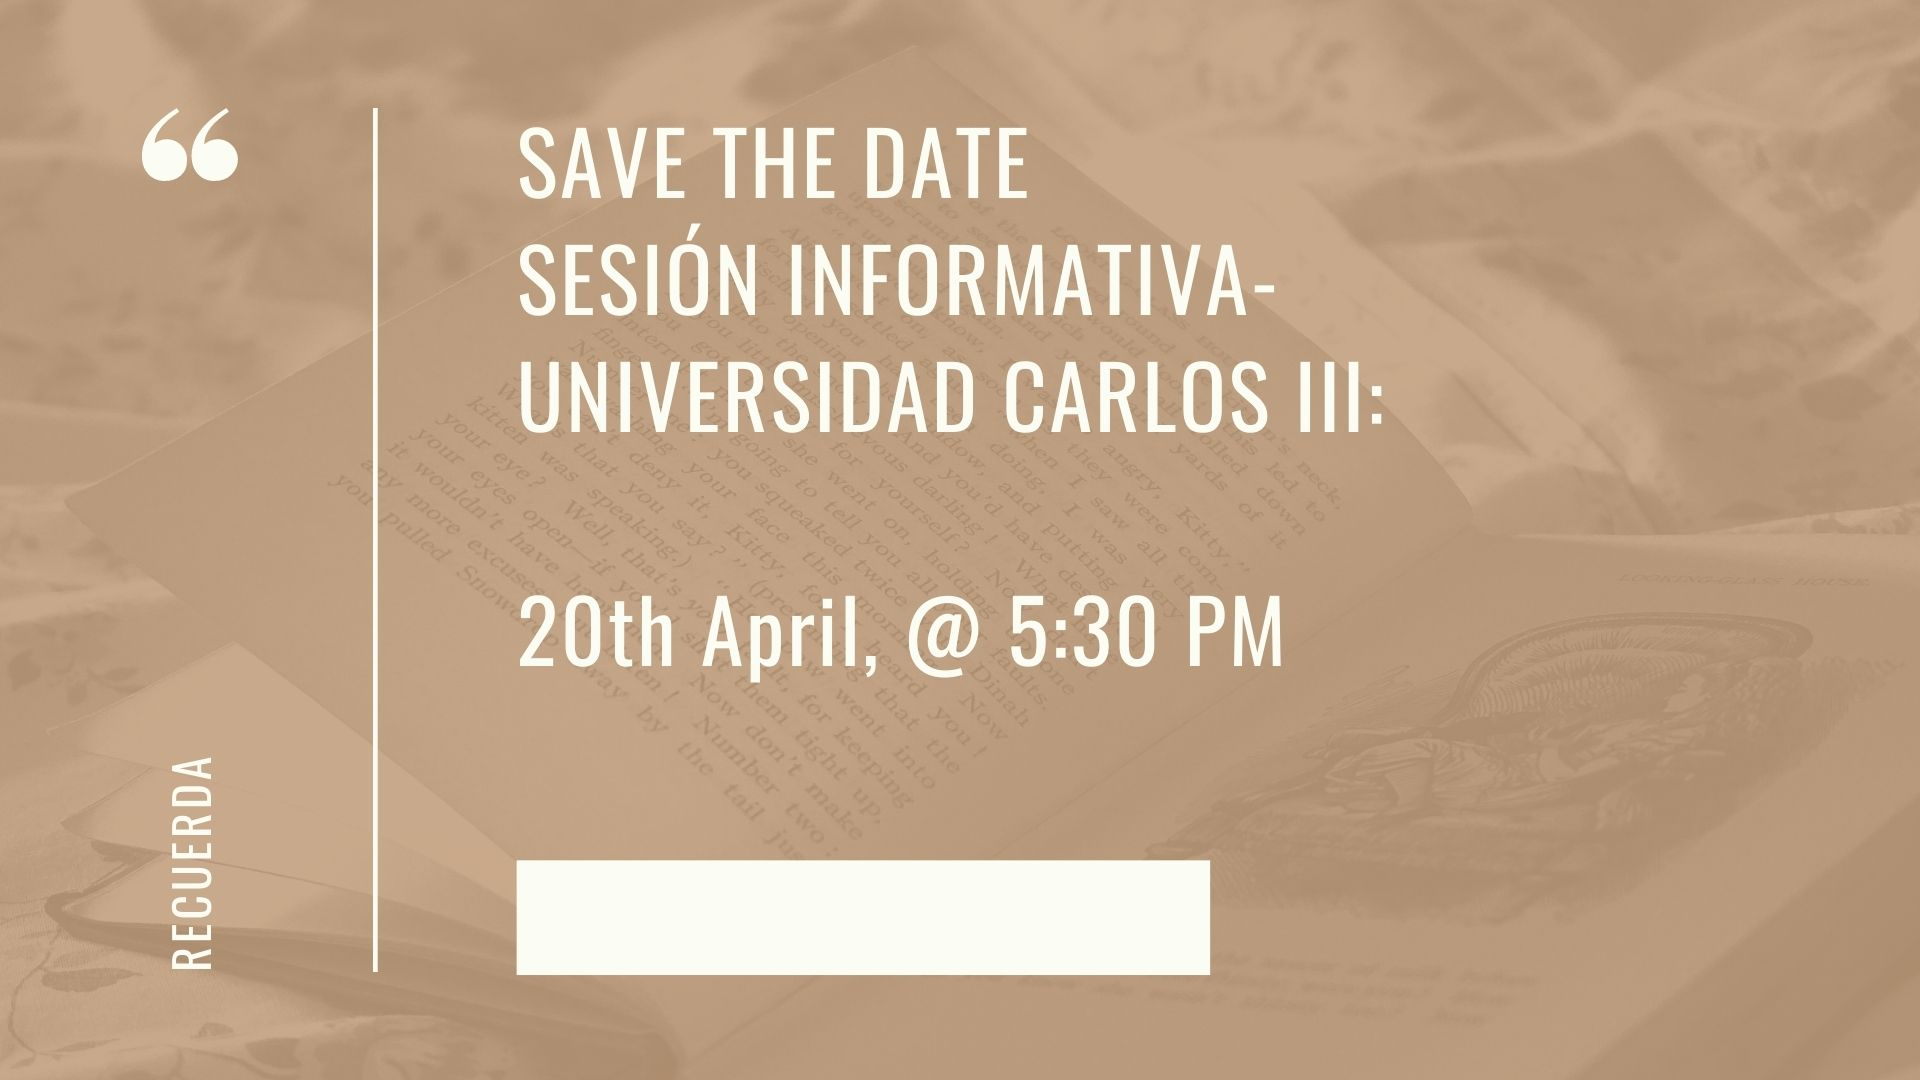 SAVE THE DATE: CARLOS III UNIVERSITY SESSION